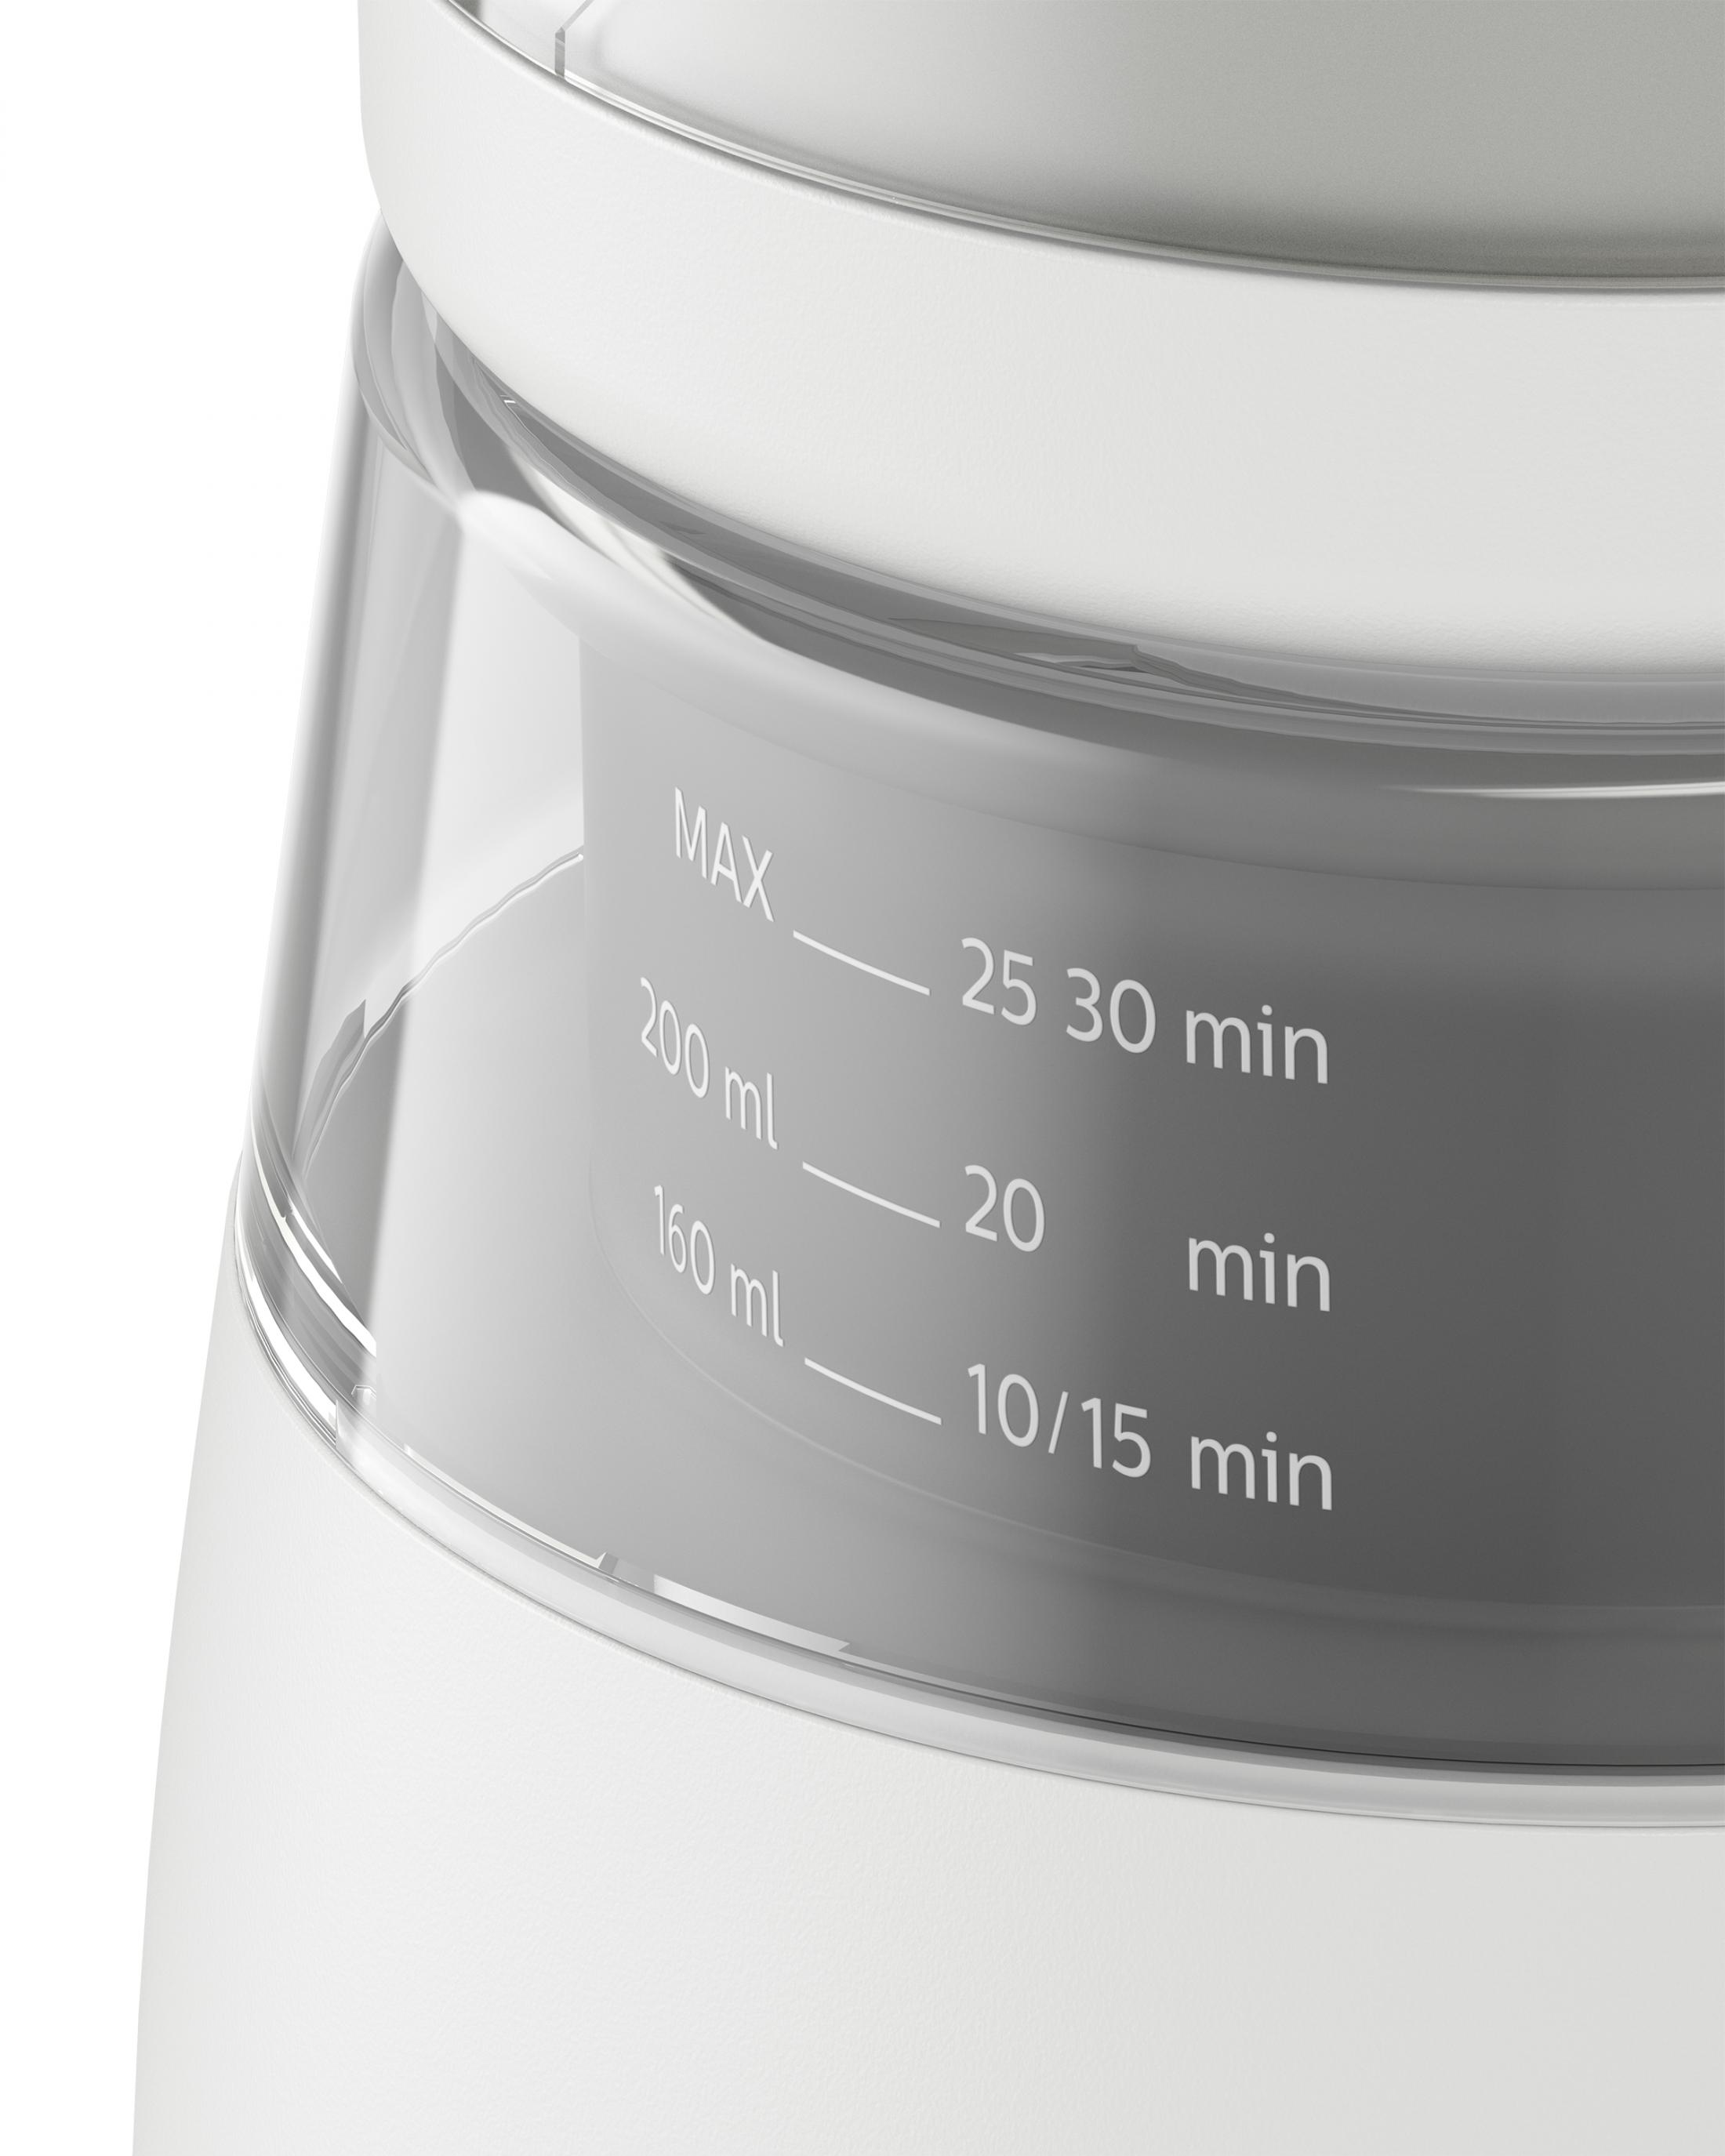 Thumbnail for Philips Avent 4-in-1 Healthy Baby Food Maker